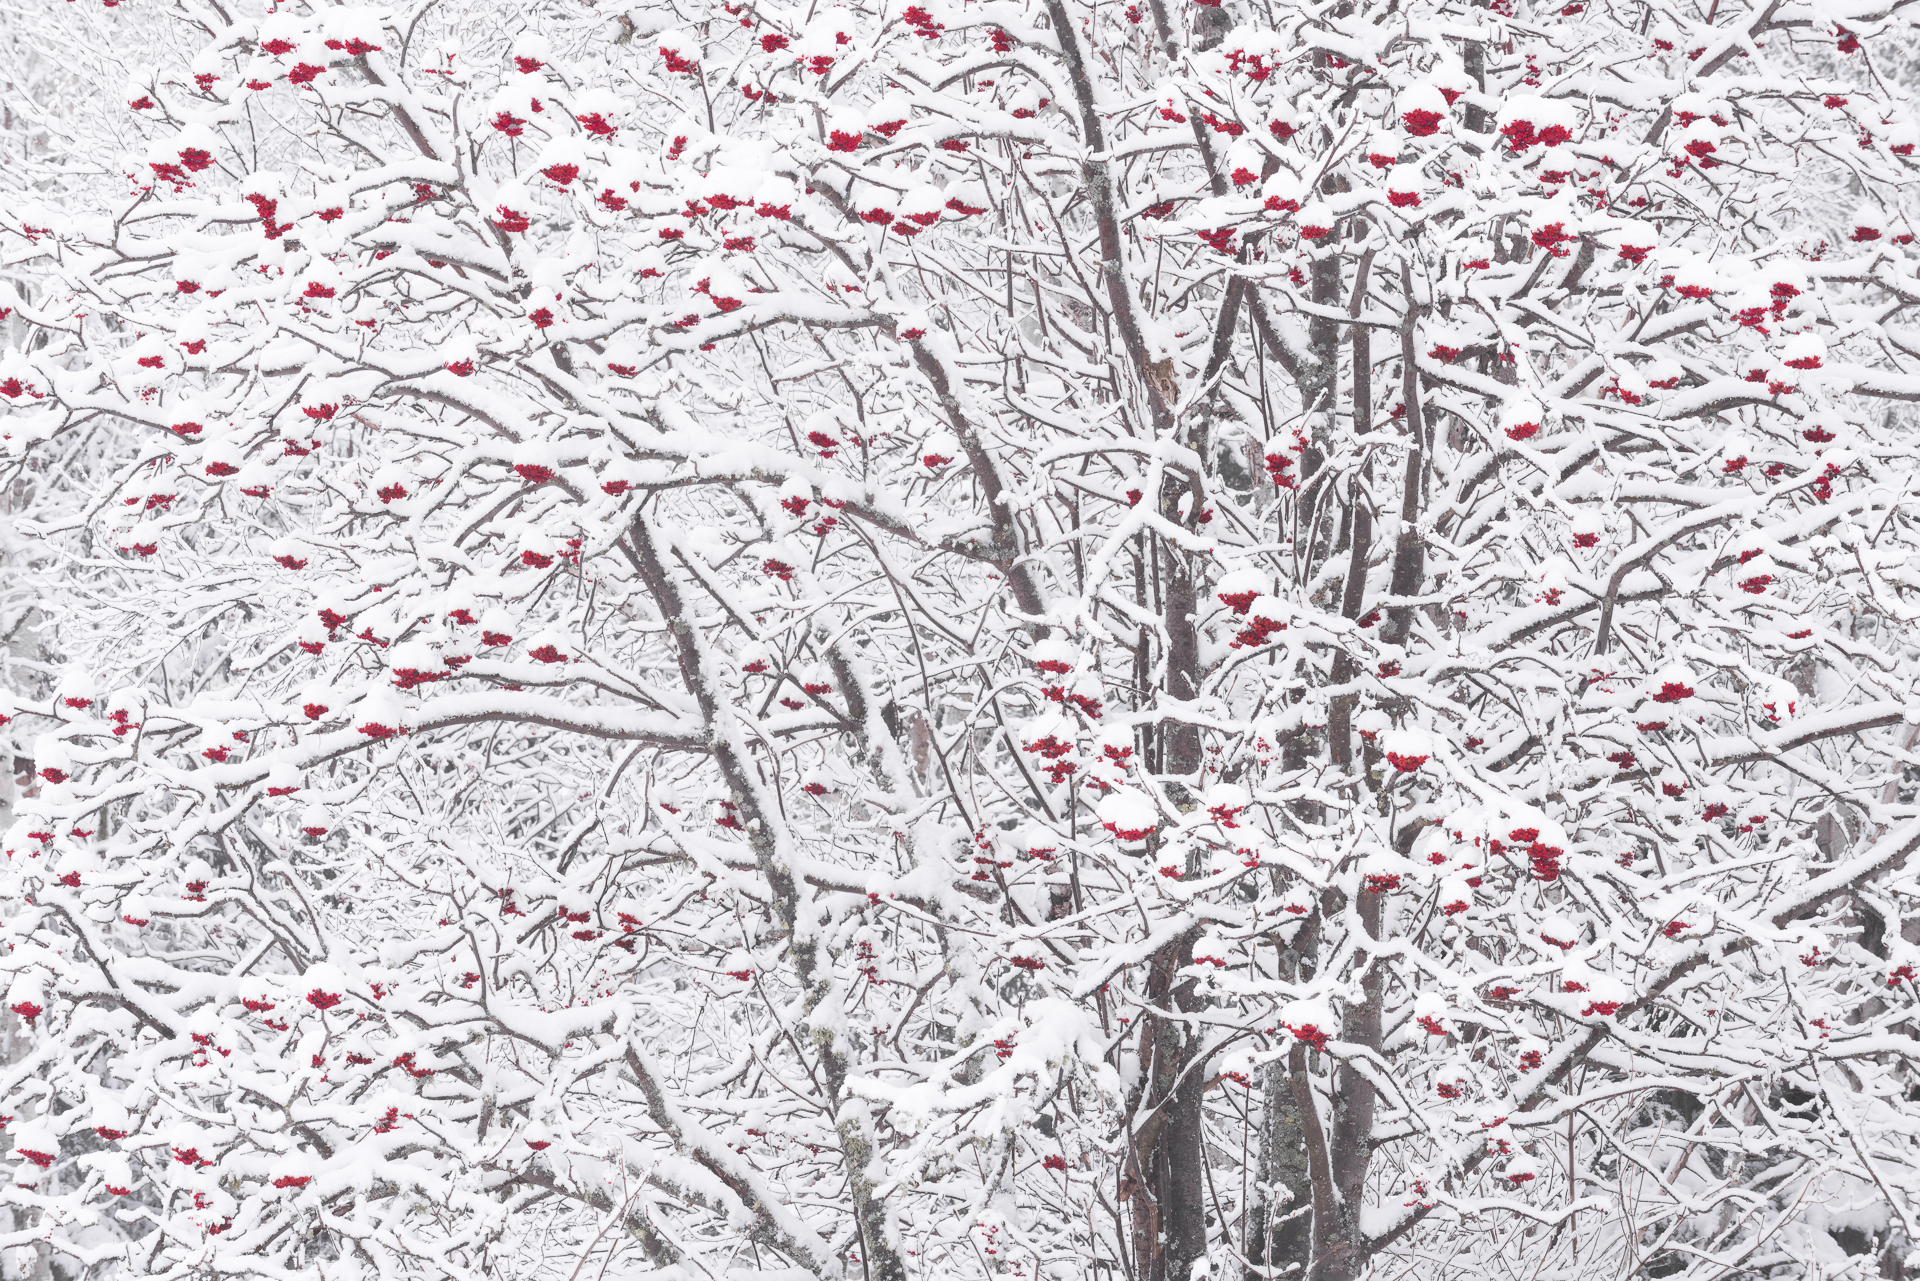 Mountain ash berries in snow storm